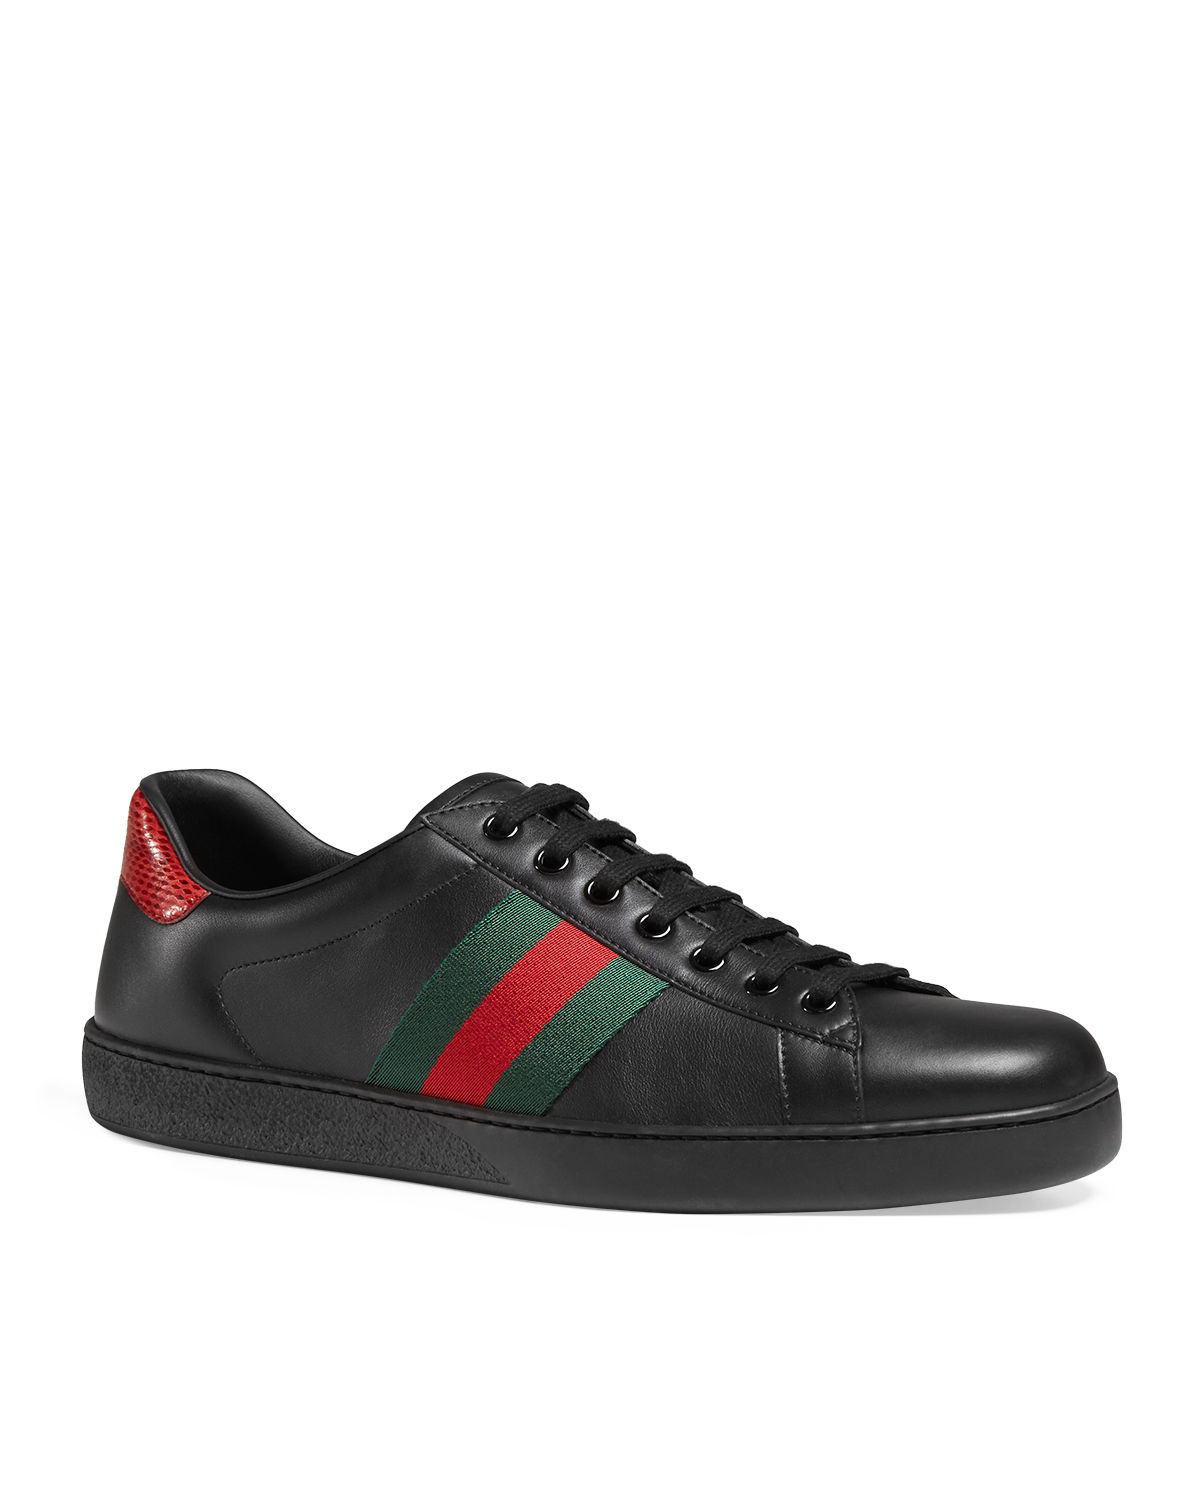 promo code a3f8e 1b4d1 Gucci Men s New Ace Leather Low-Top Sneakers